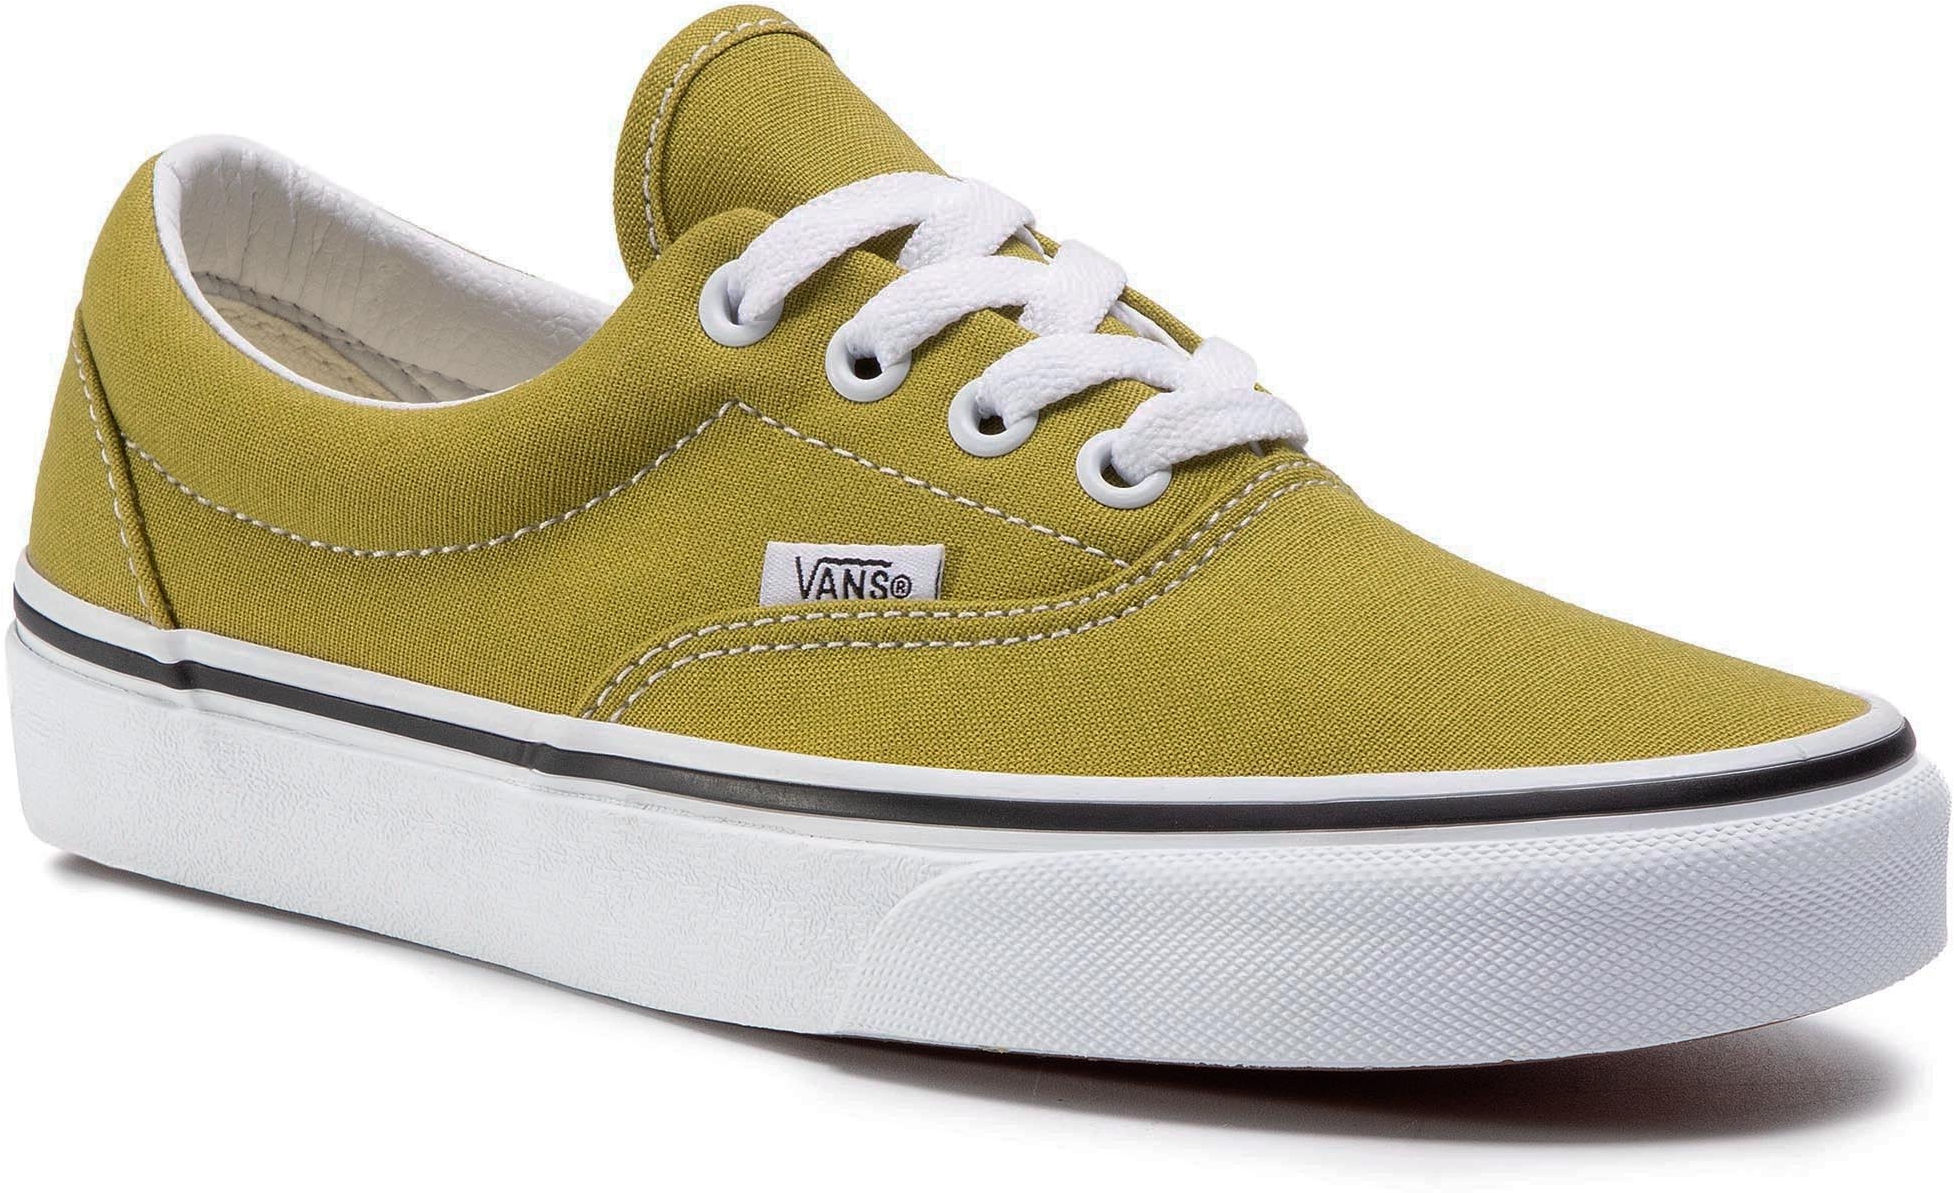 Tenisówki VANS - Era VN0A4U391UK1 Olive Oil/True White